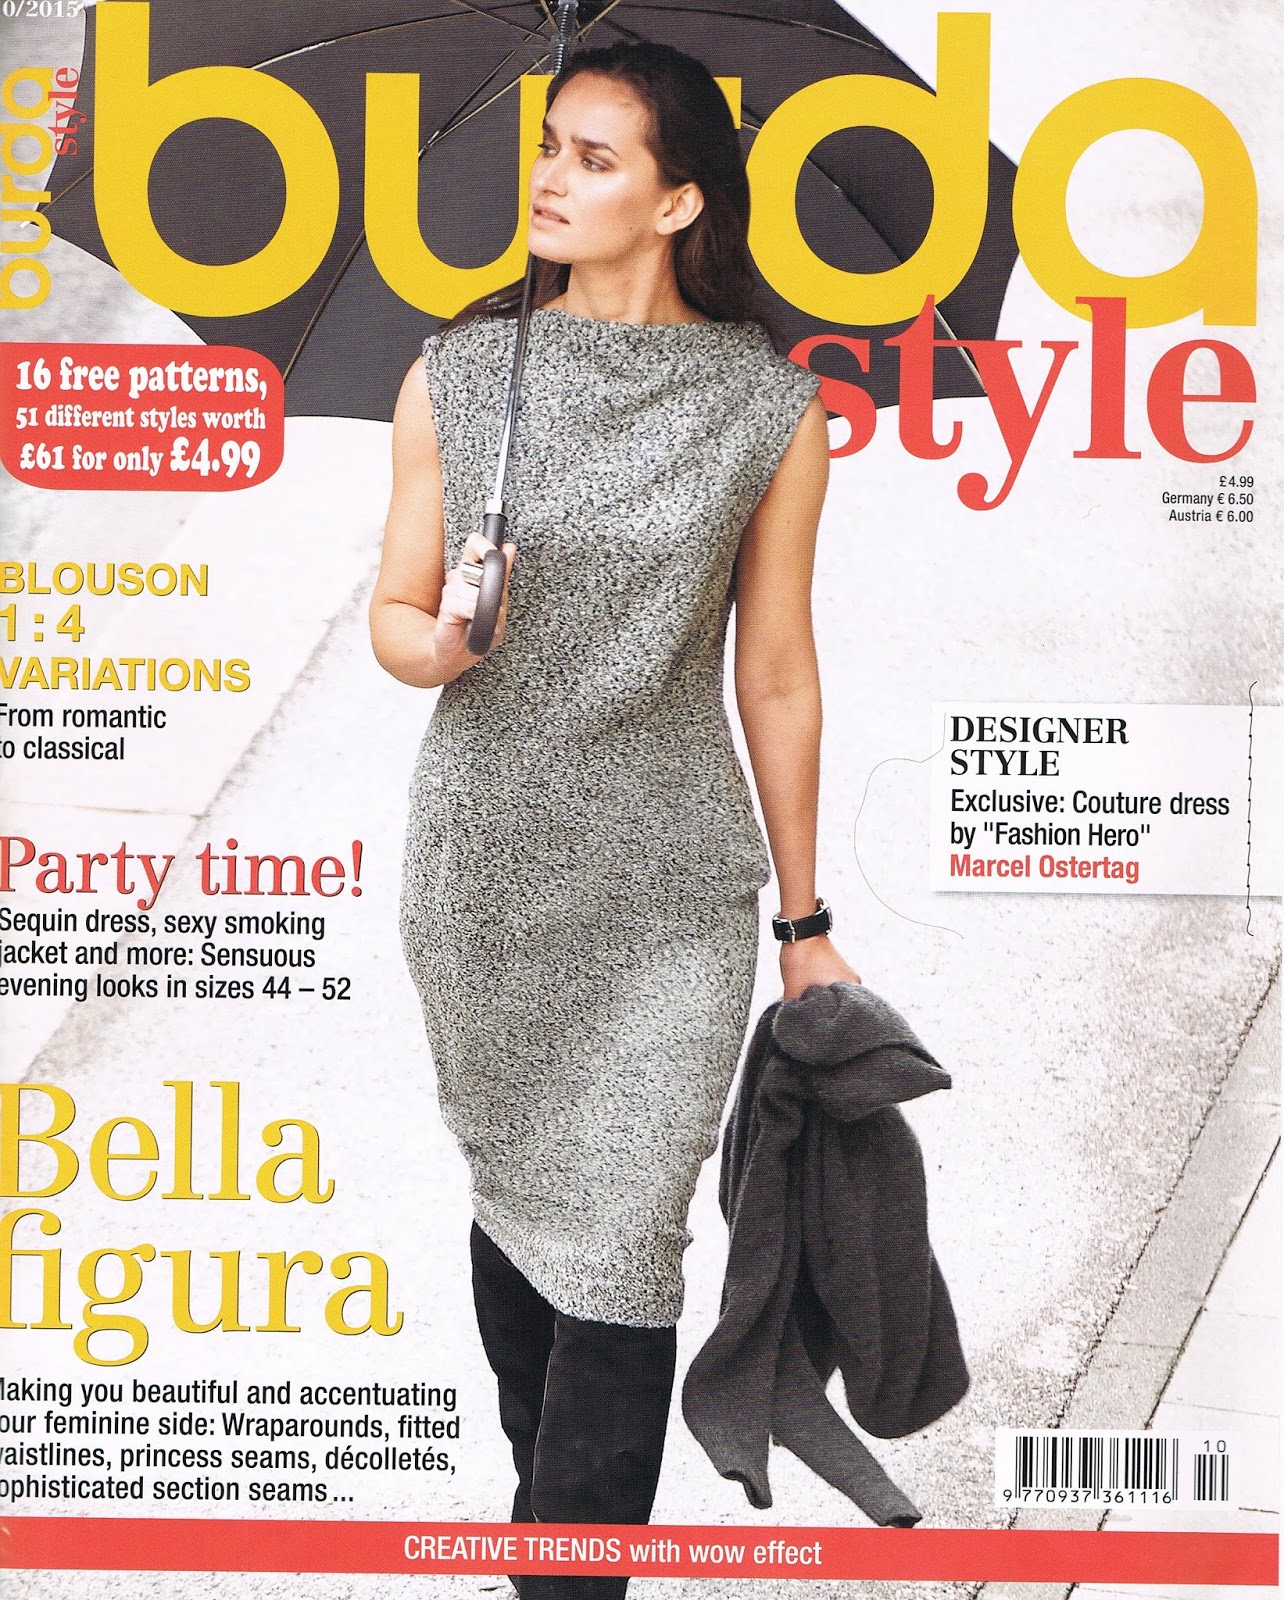 Smf designs and friends burda style october 2015 Fashion style october 2015